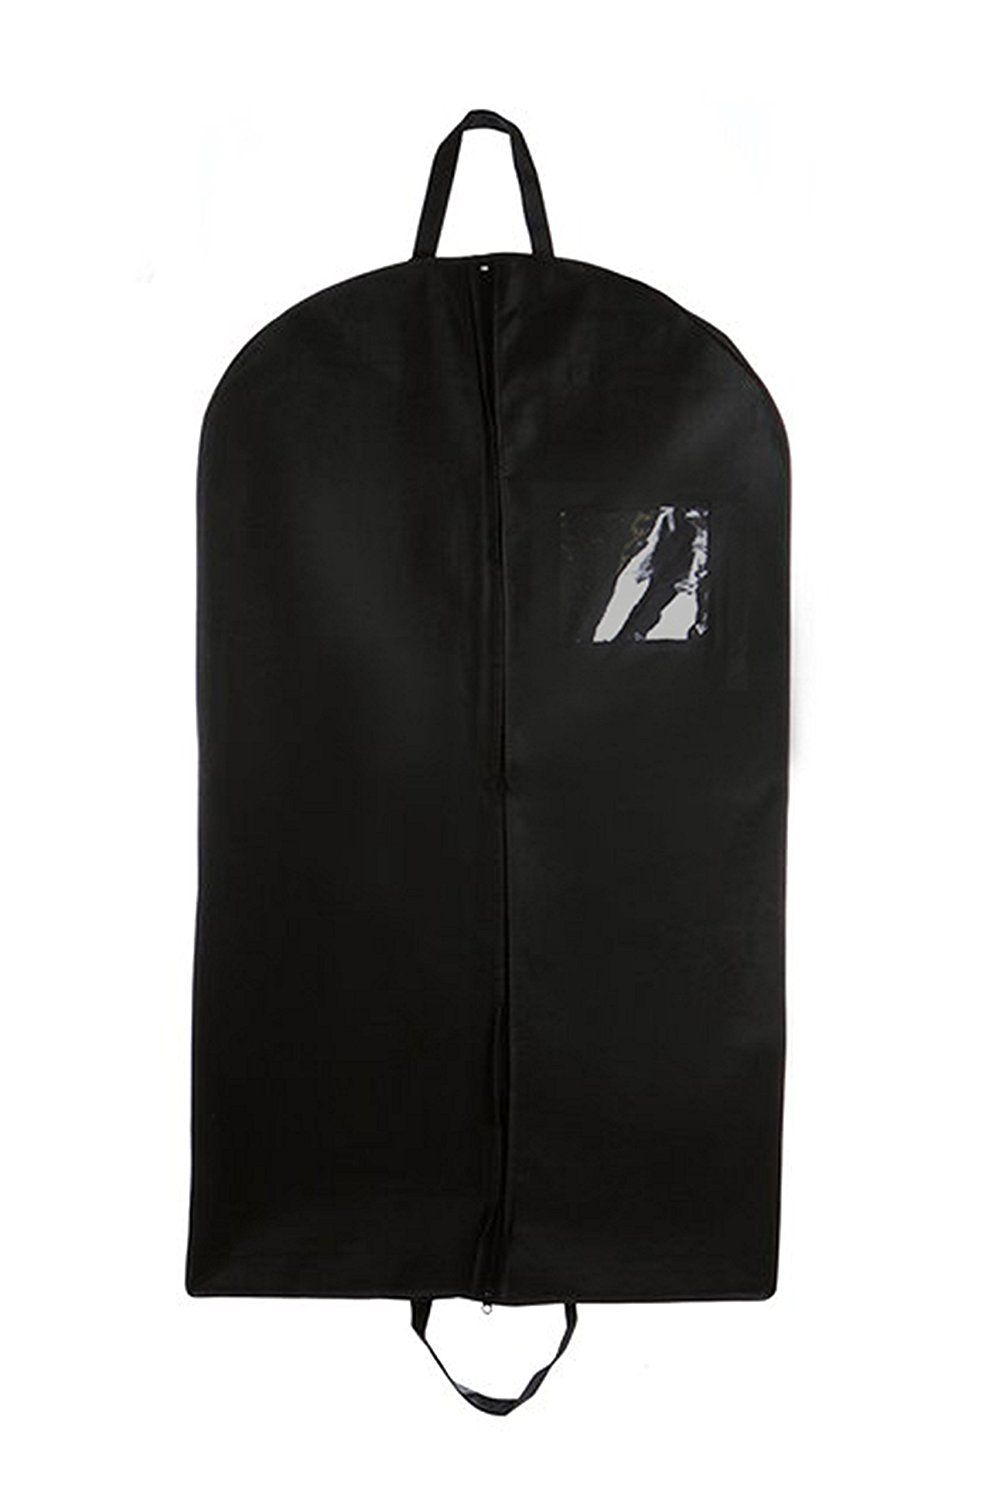 Foldover Breathable Garment Bag with Handles